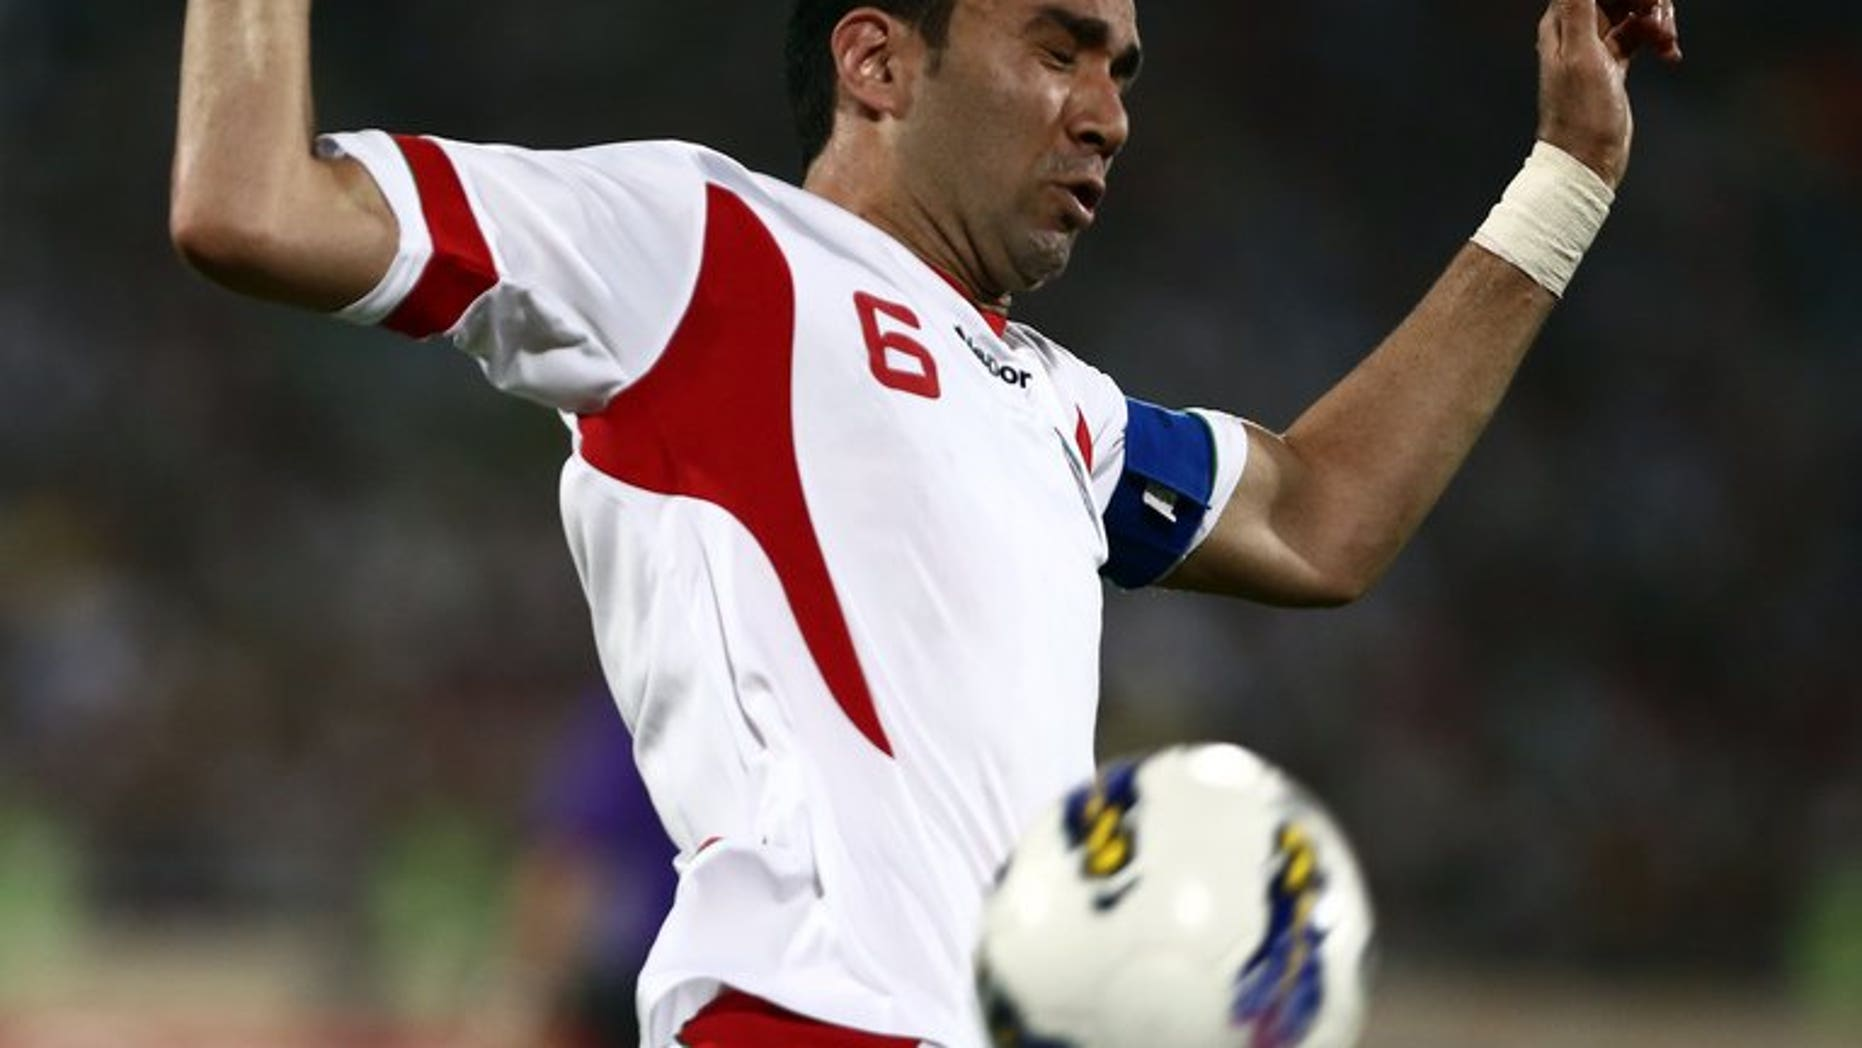 Iran's Javad Nekounam controls the ball during their 2014 World Cup qualifying match against Lebanon in Tehran, on June 11, 2013. Iran has barred Nekounam's lucrative transfer to a club in neighbouring UAE because of a dispute over a name, media reports said on Sunday.